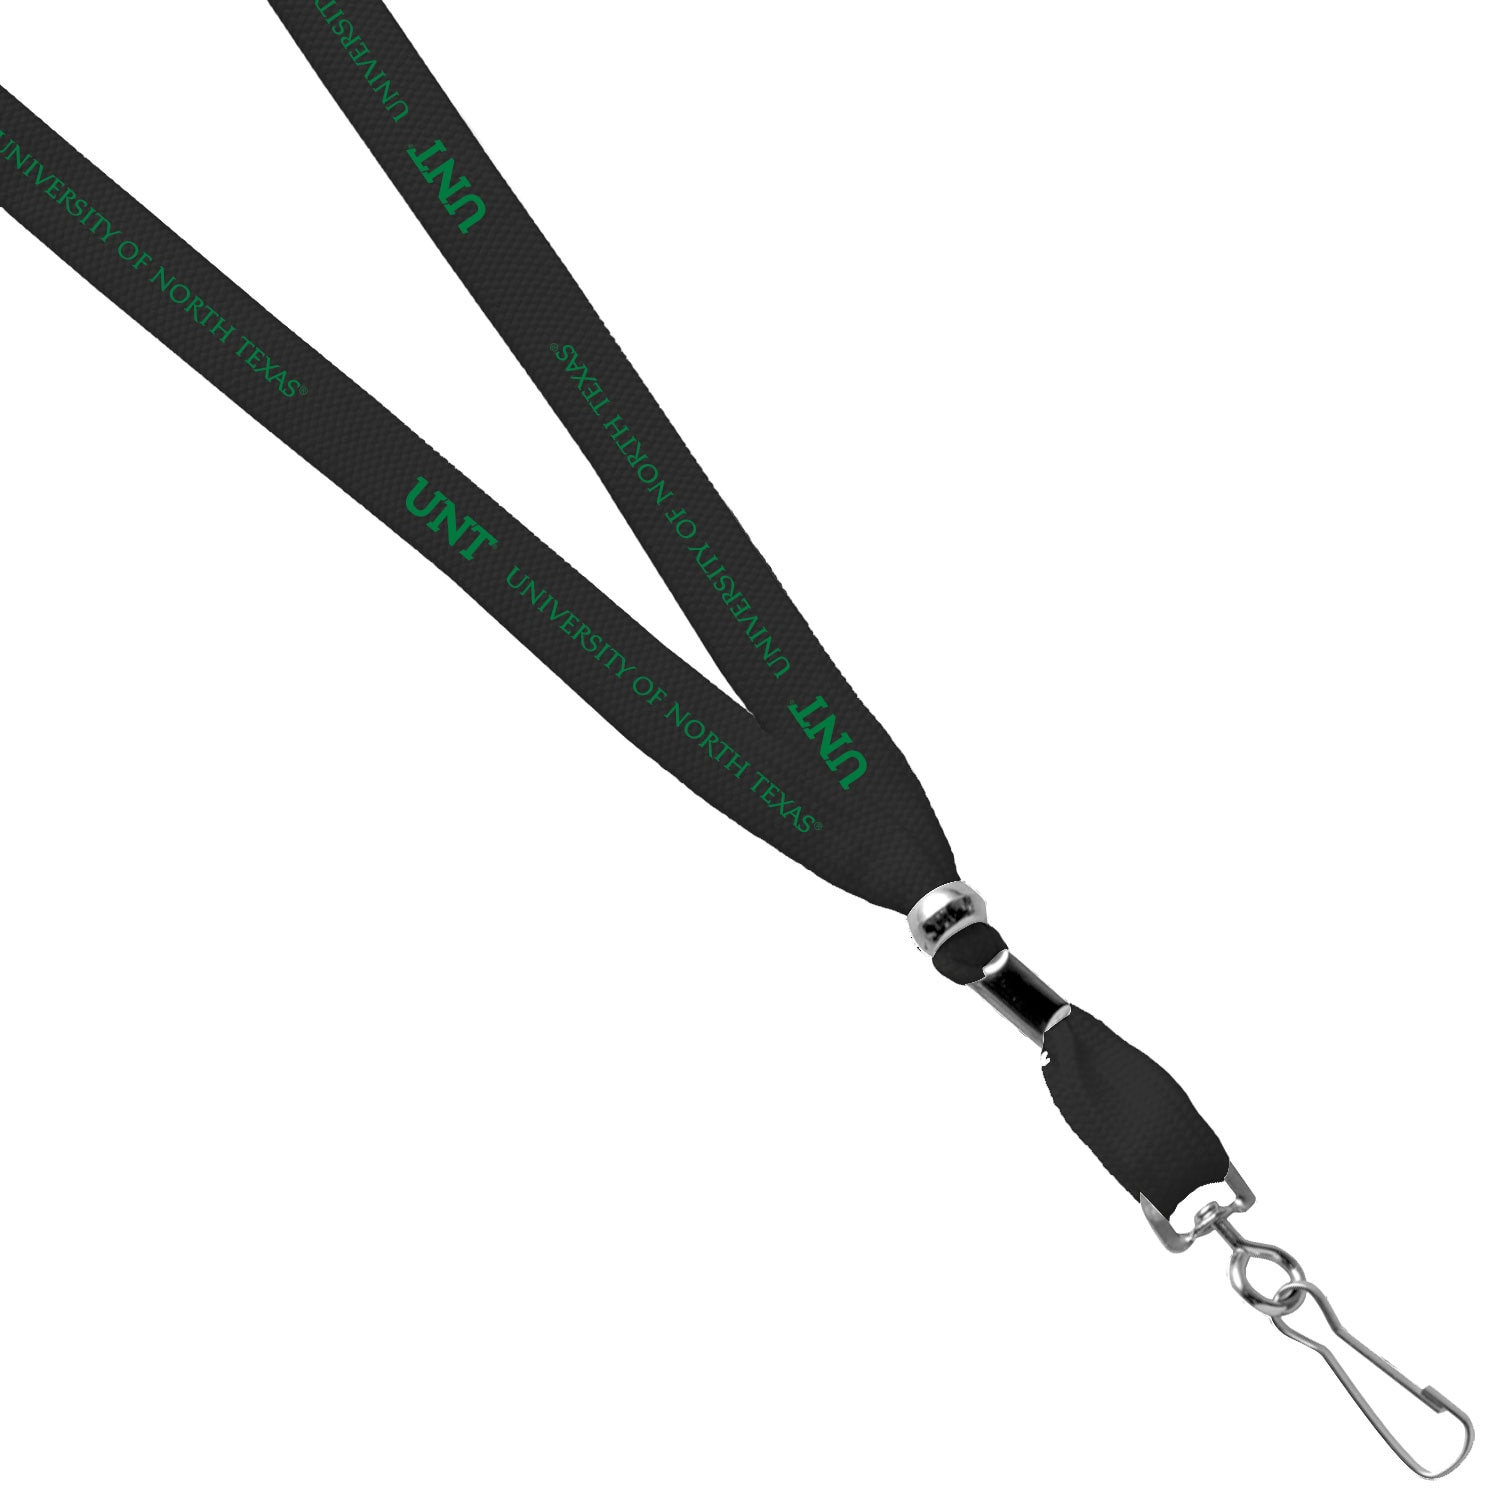 University of North Texas Printed Lanyard with Hook